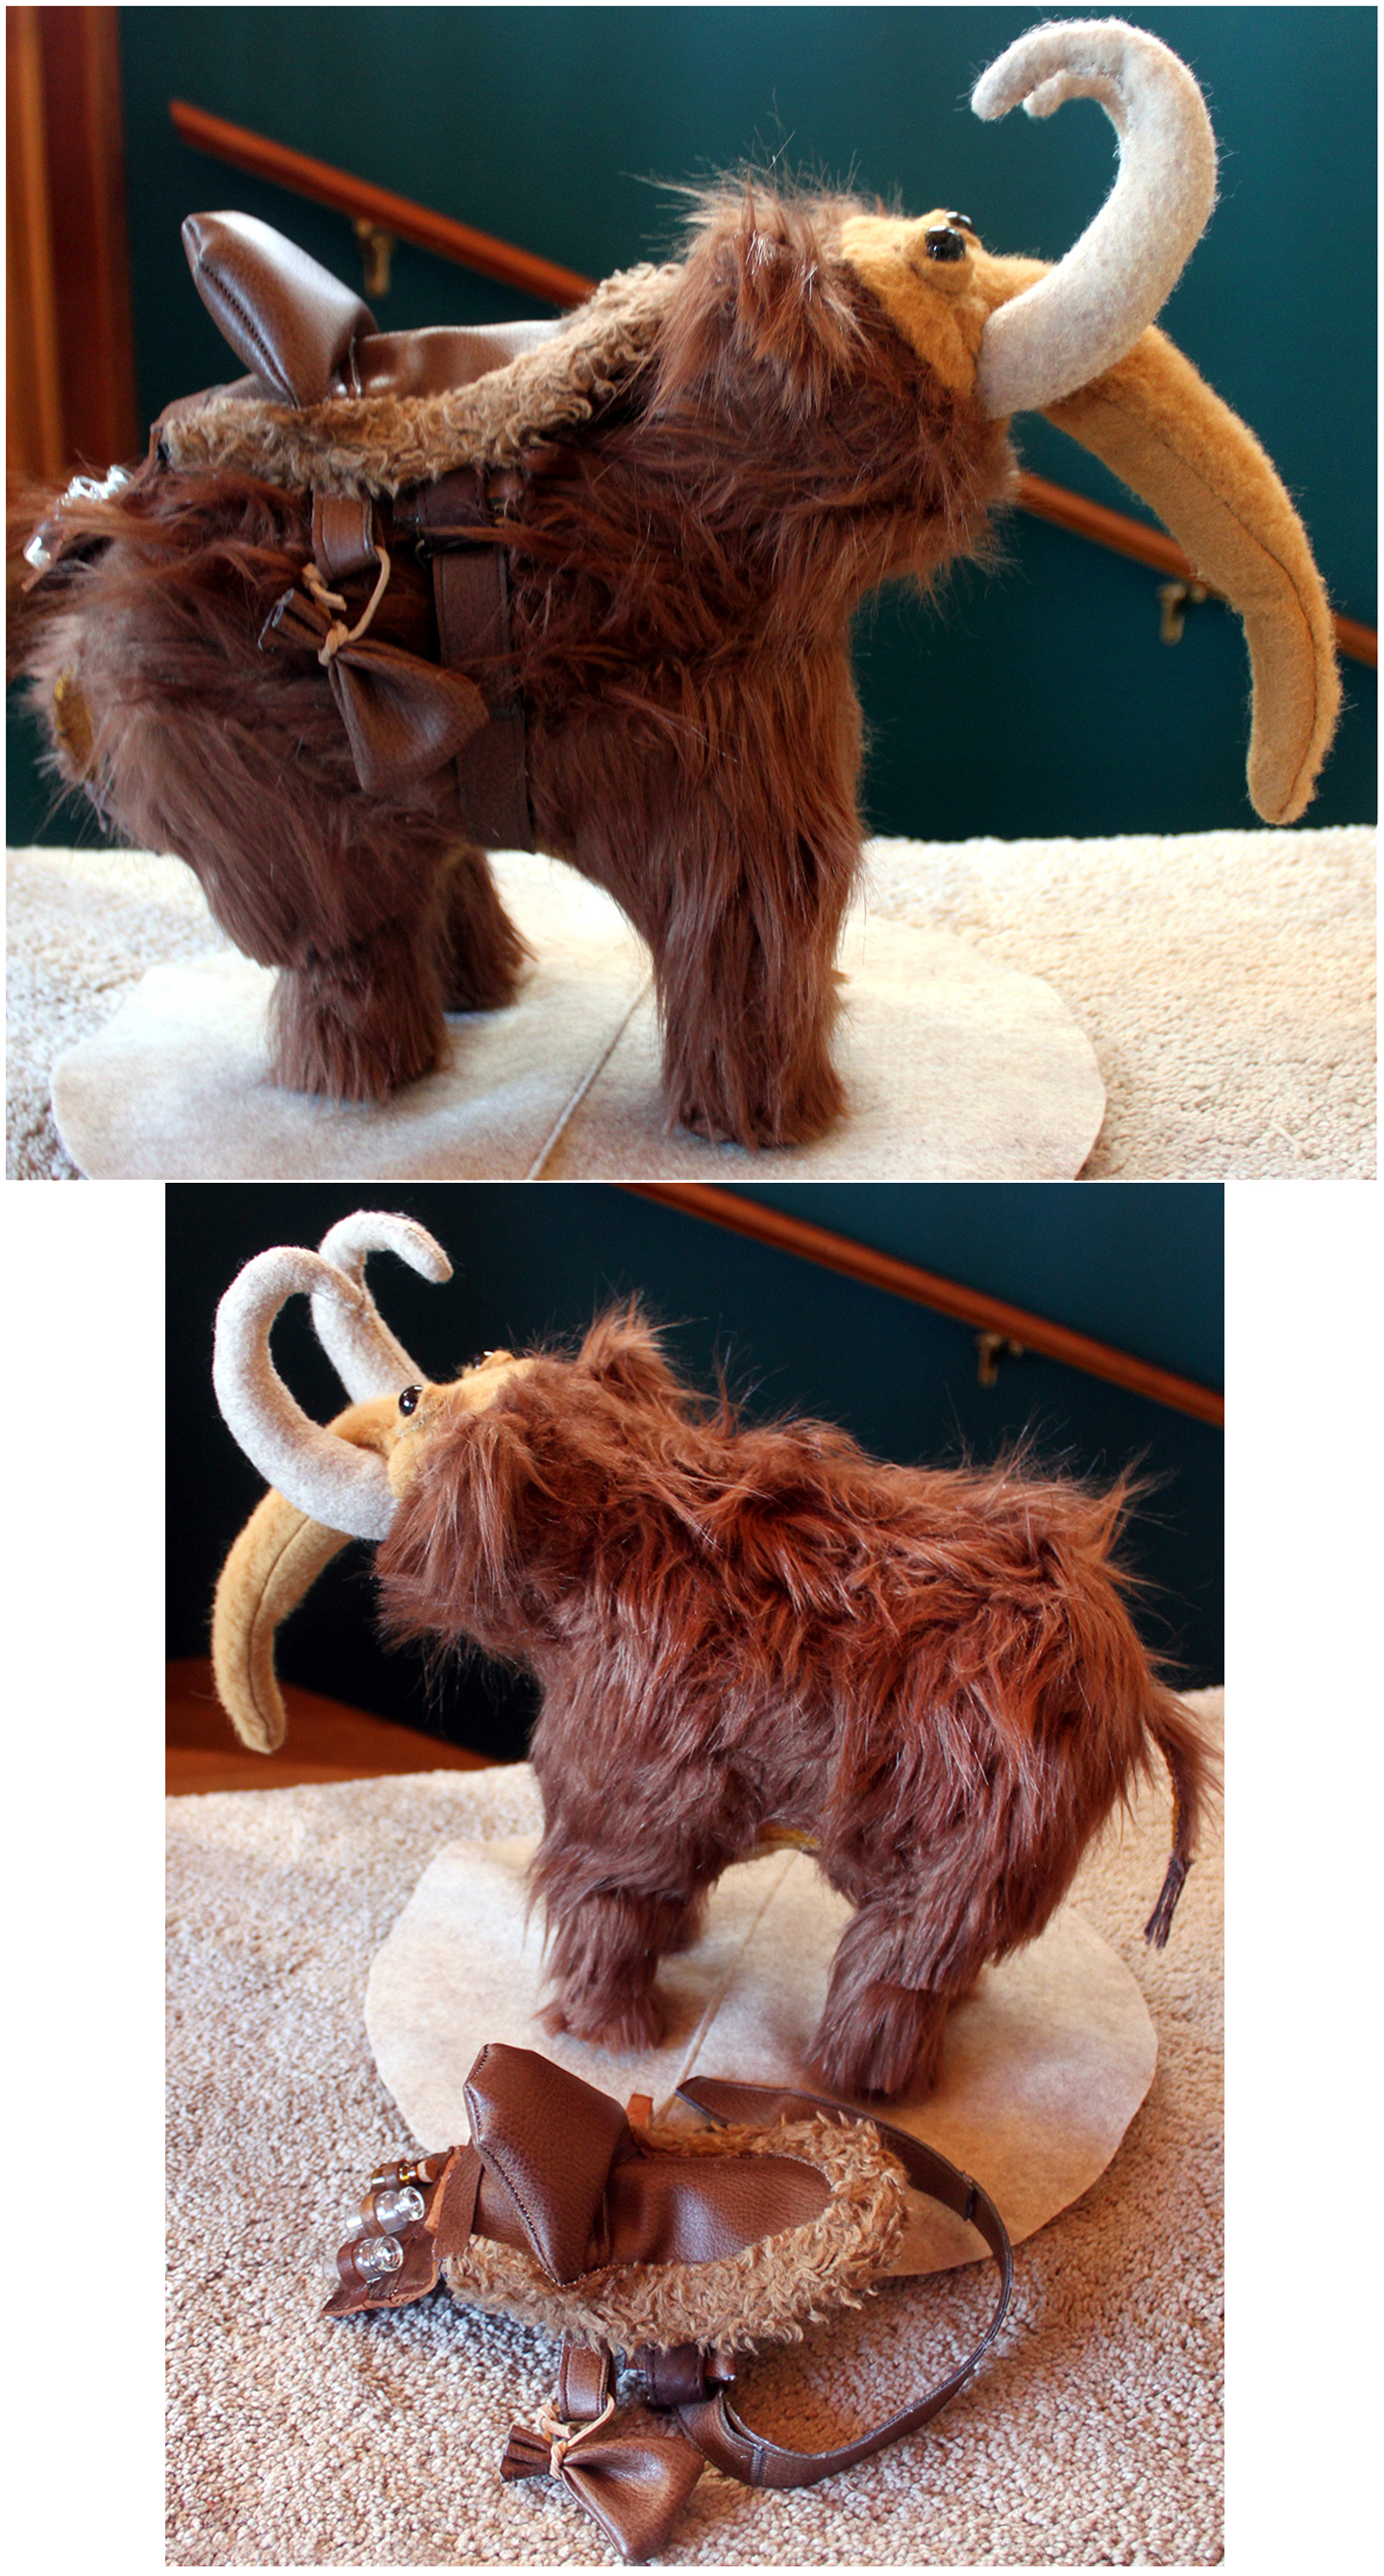 Gustav the Woolly Mammoth